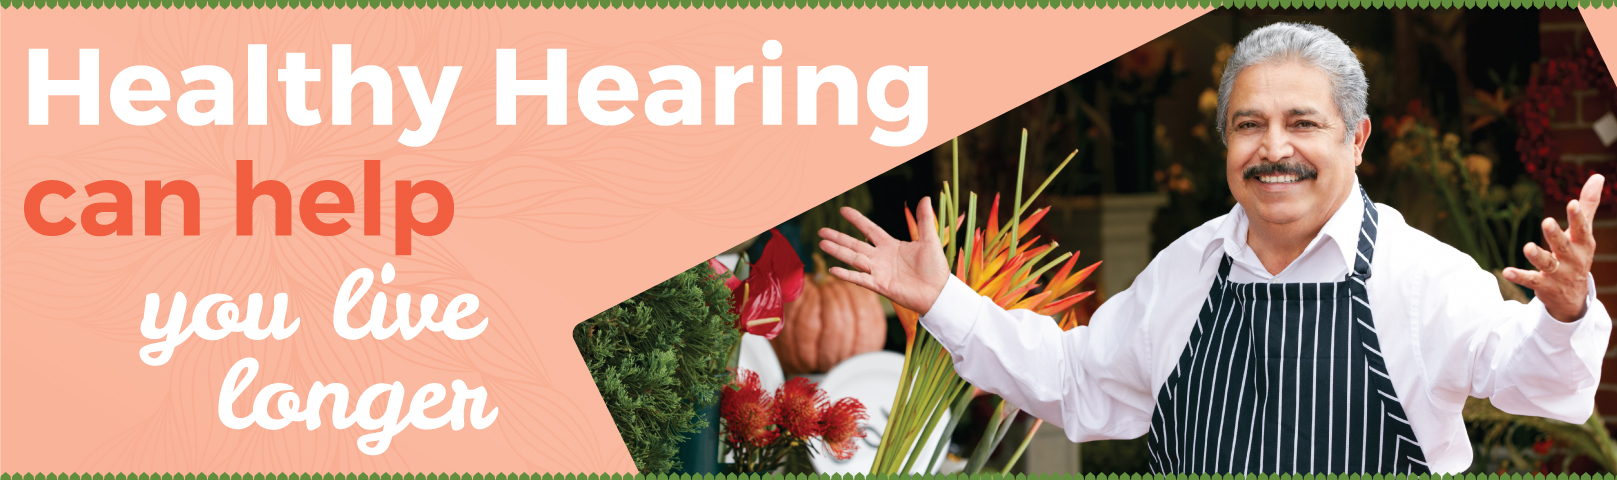 Healthy hearing can you live longer